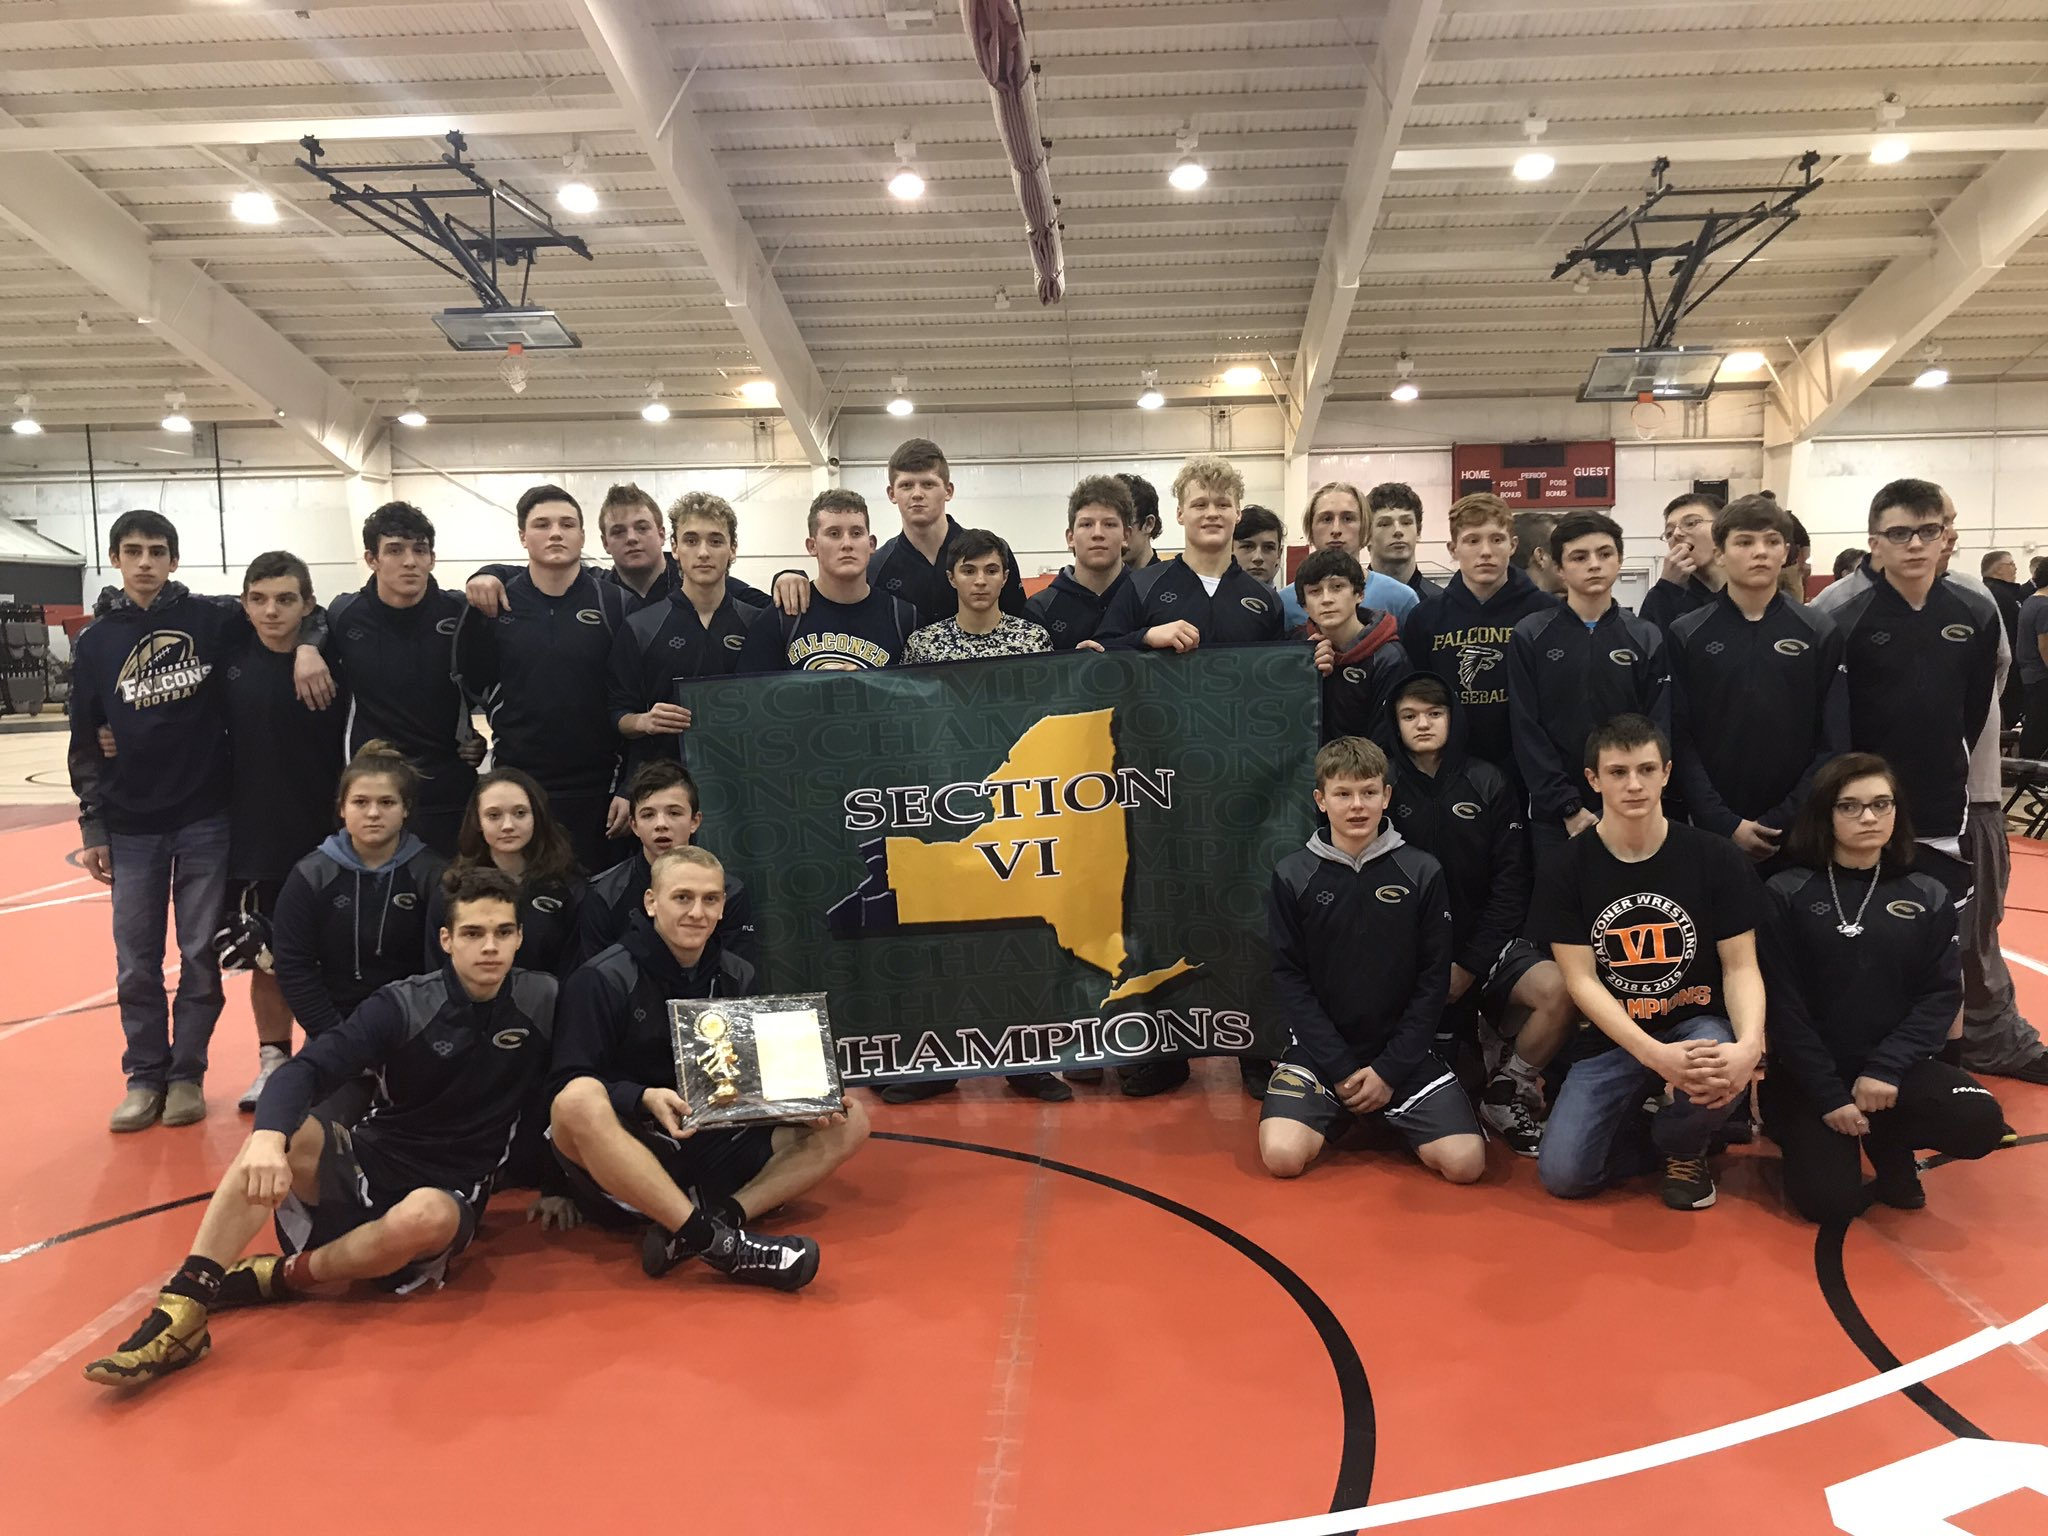 Fate of Wrestling in Section VI to be Decided Thursday